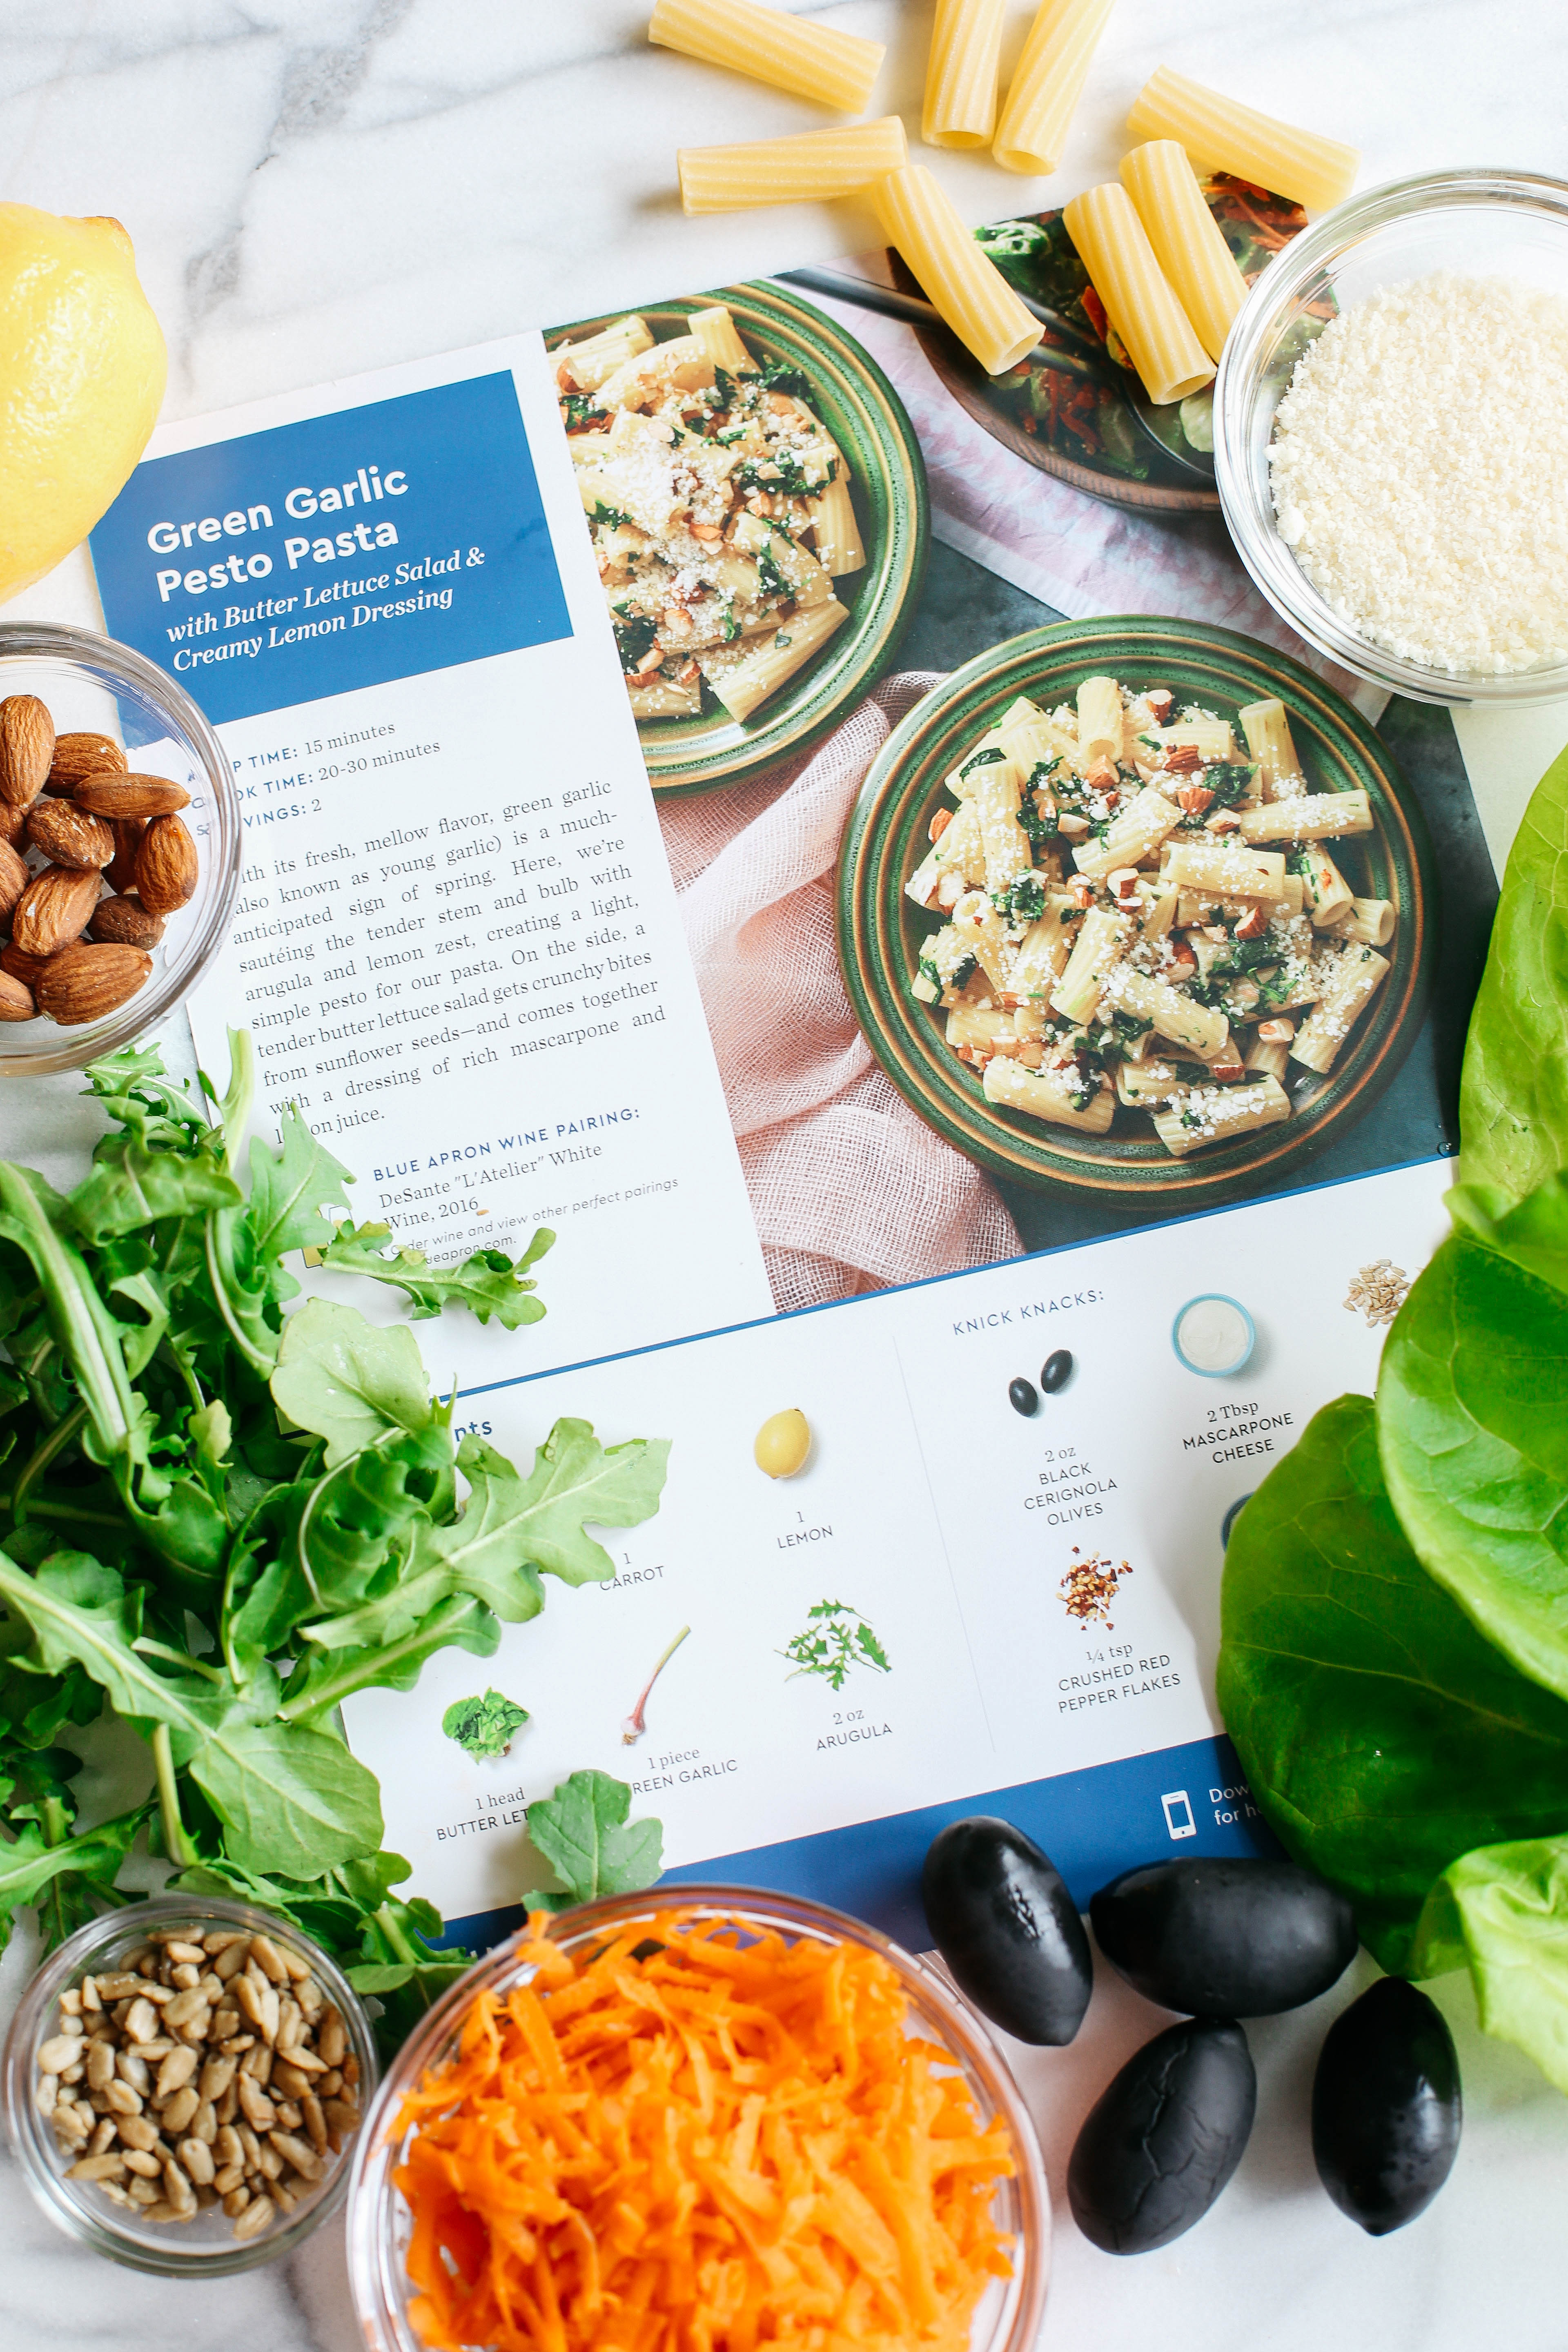 Blue apron mission statement